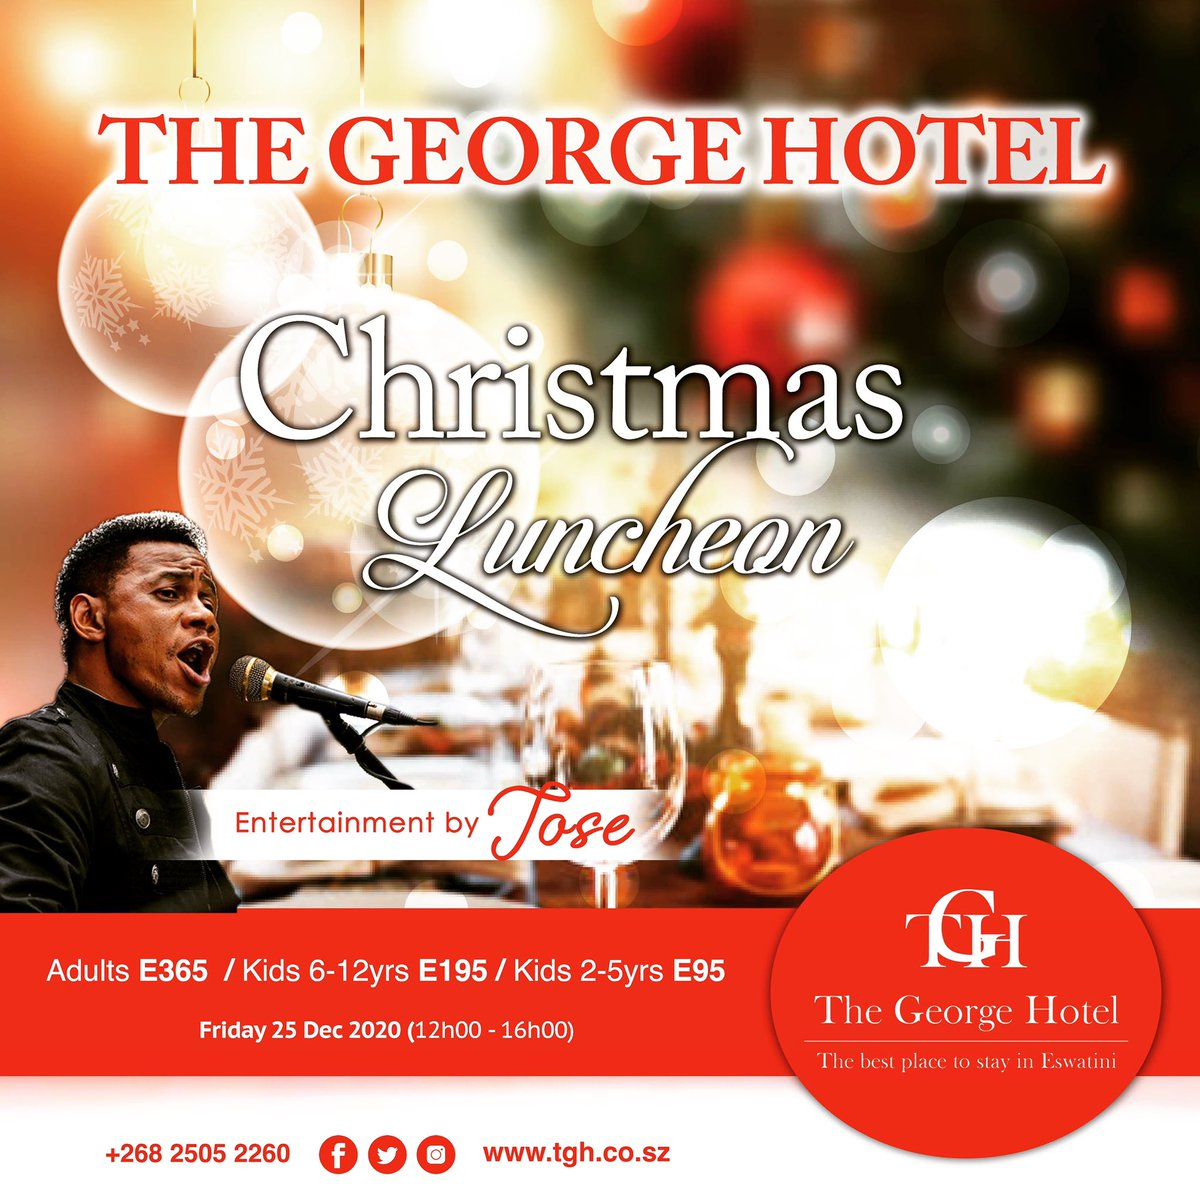 Enjoy a #buffettodiefor and #serenadingmusic from #jose this #christmas for only E365 per adult.  Call +26825052260 to reserve your table.  #christmaslunch #familytime #festiveseason #holidays #limitedseating #bookyourtable #adheretocovid19guildelines https://t.co/bovRbfJSEI